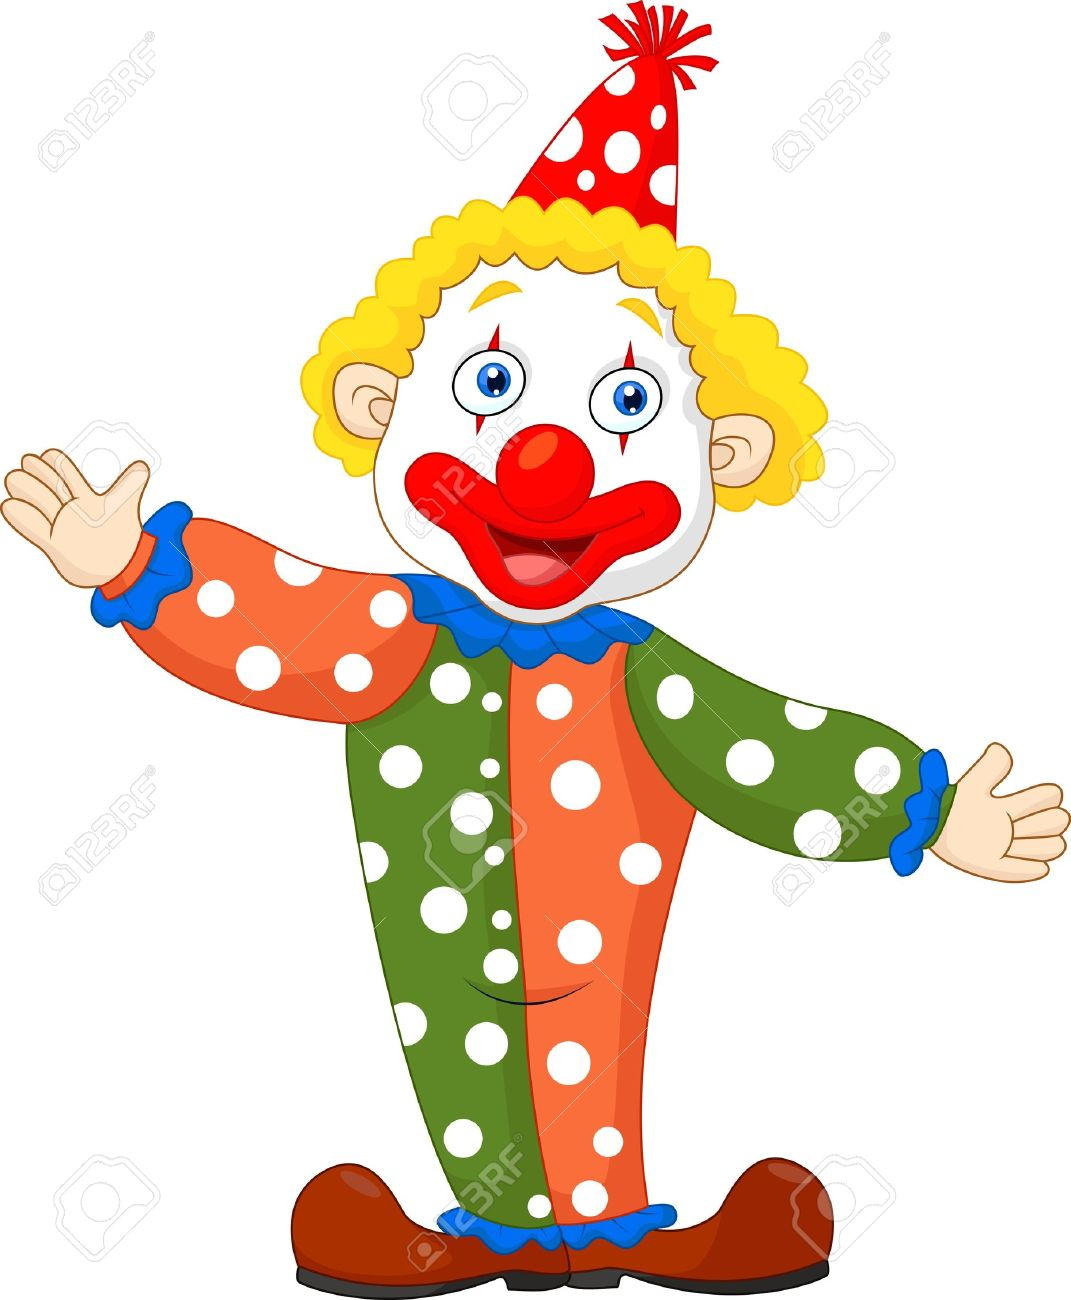 Clown Clipart Images & Stock Pictures. Royalty Free Clown Clipart ...